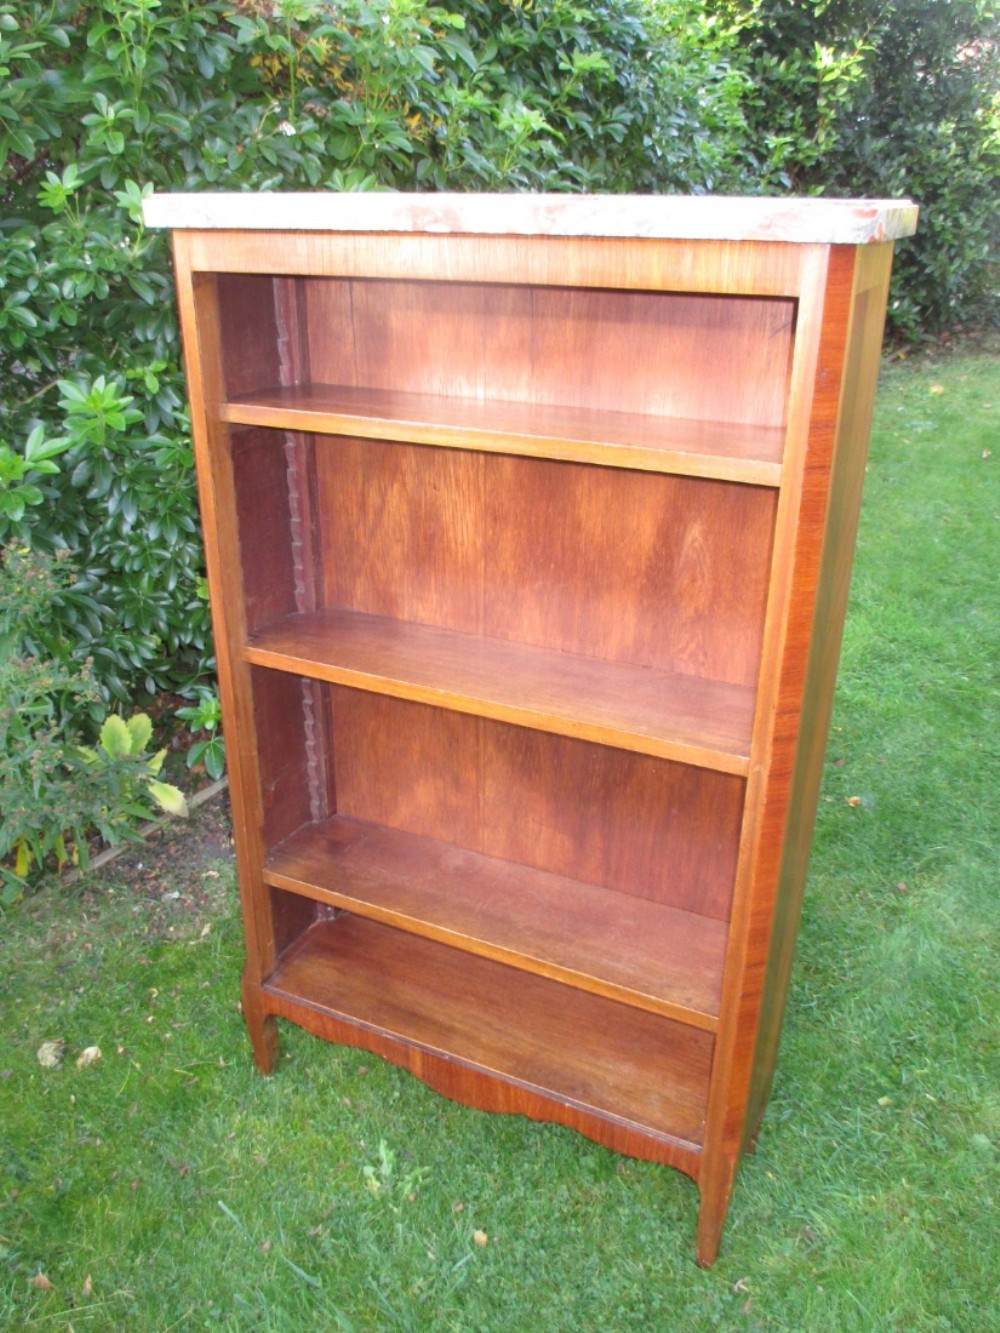 Red Marble Top : French walnut bookcase with red marble top